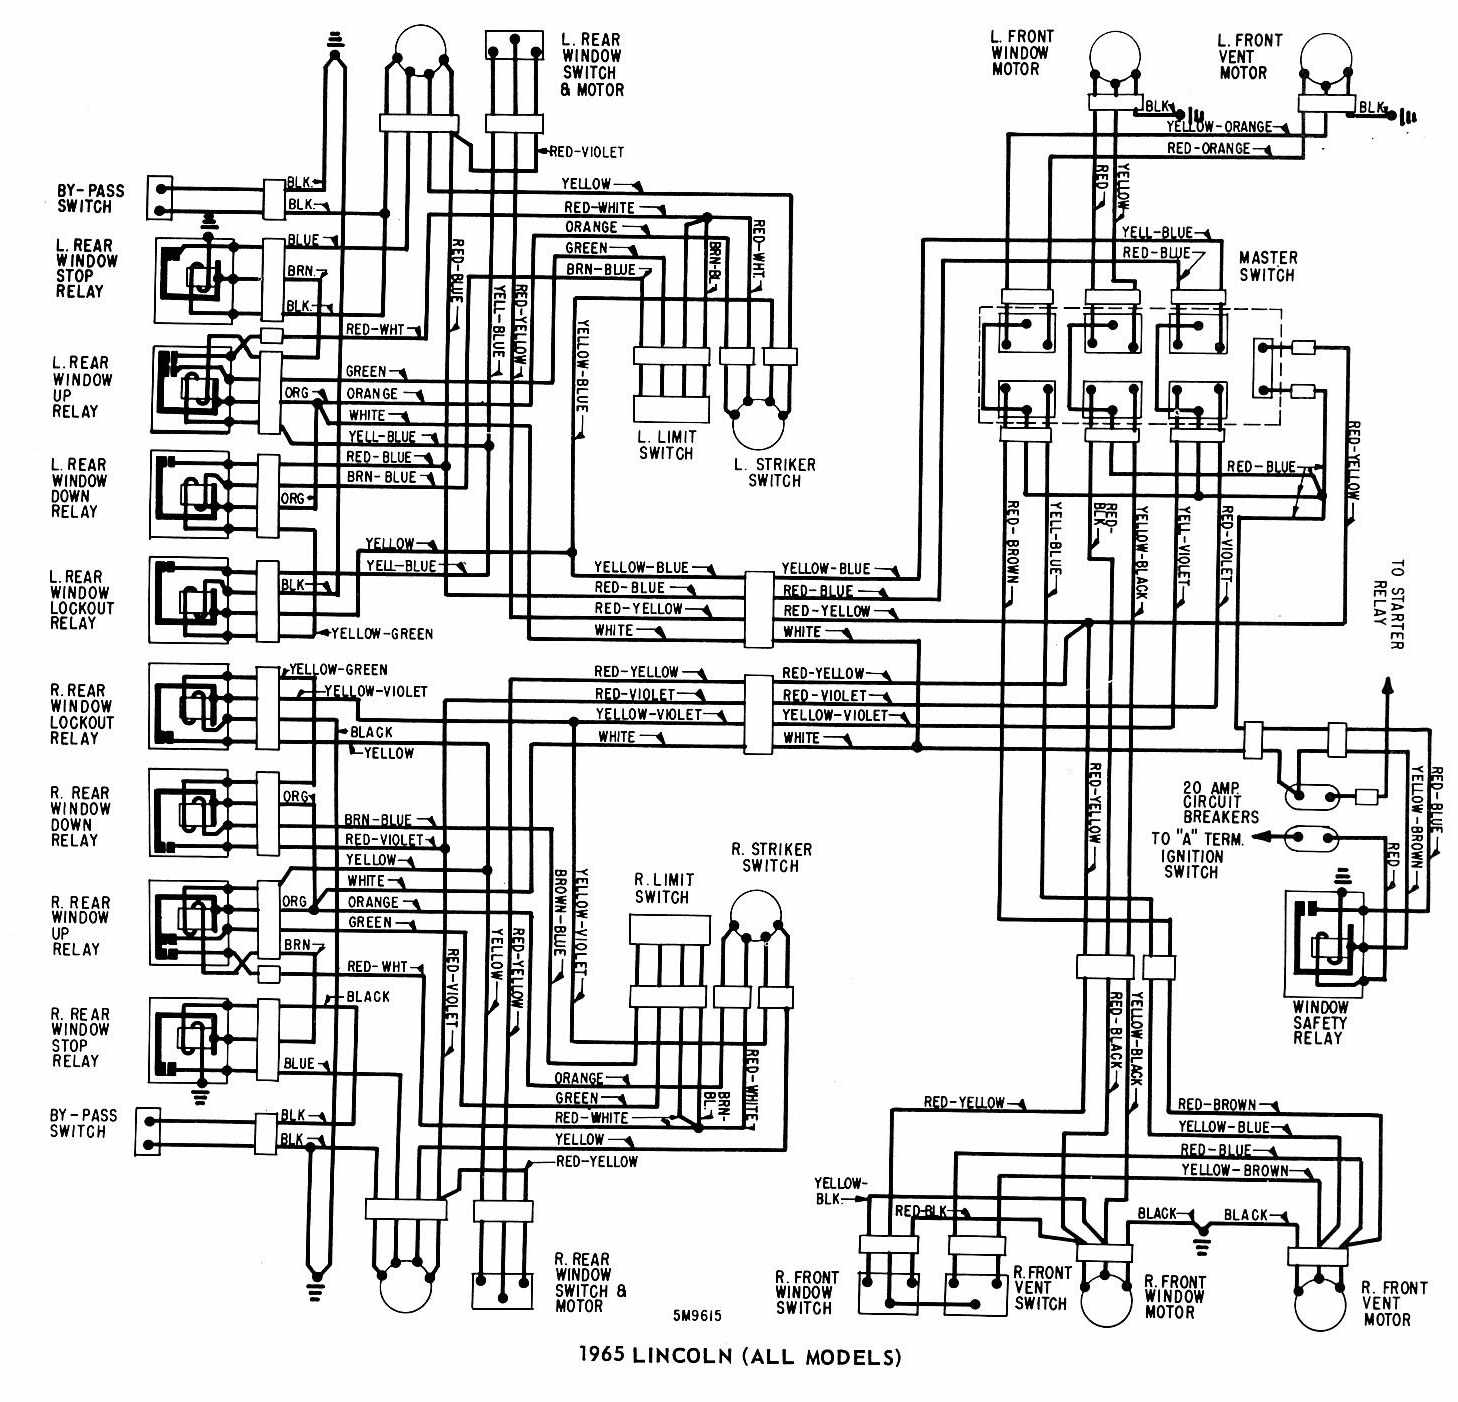 medium resolution of 1962 lincoln wiring diagram free wiring diagram for you u2022 lincoln parts diagrams lincoln wiring diagram